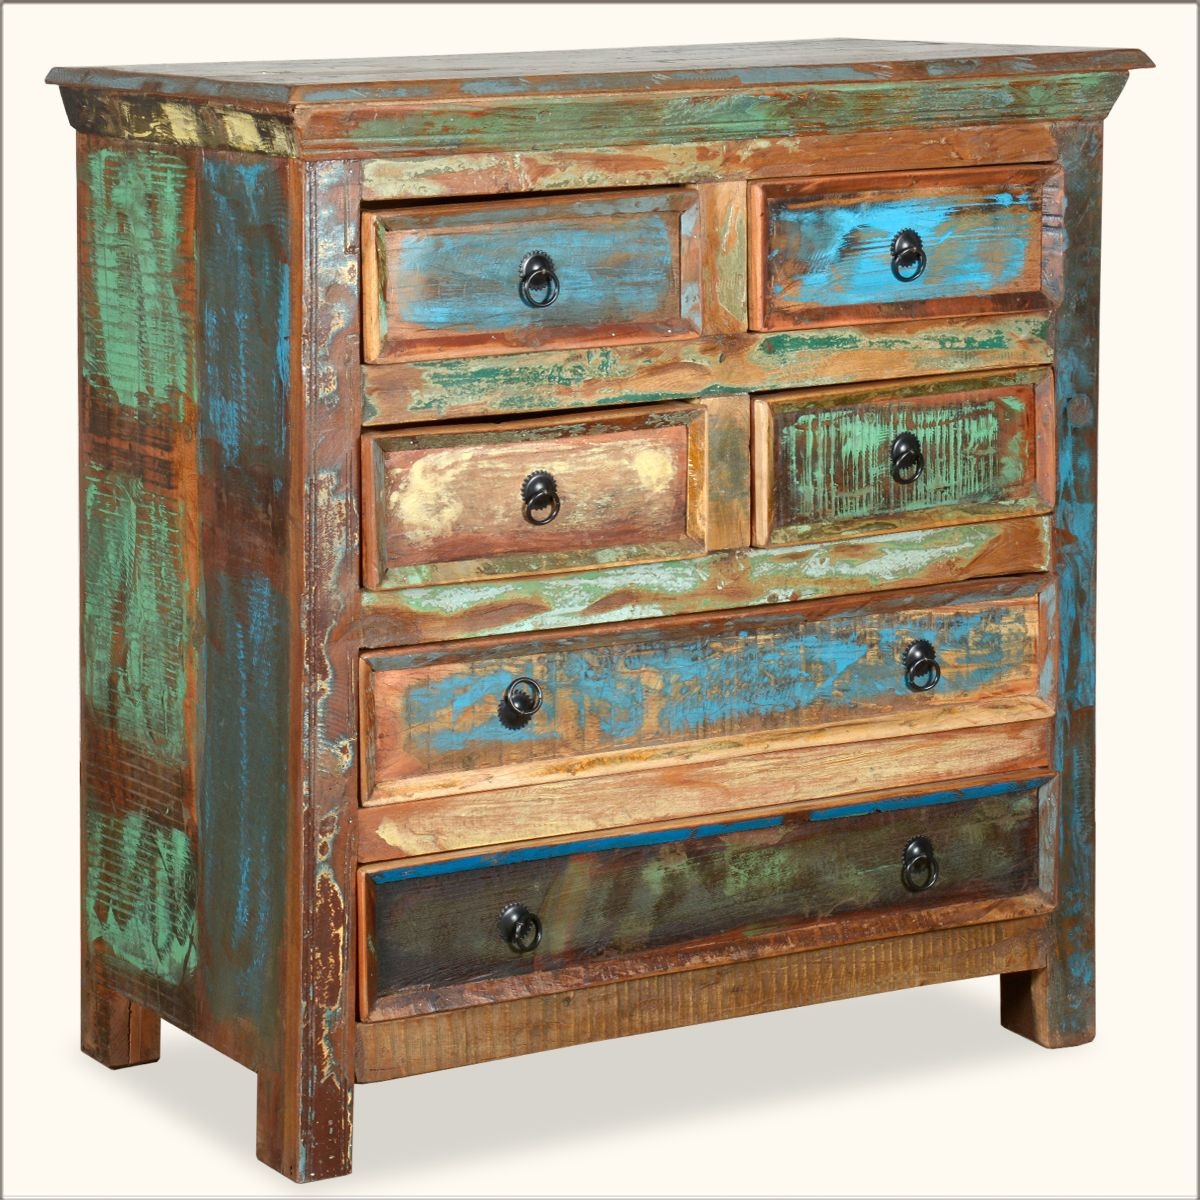 Appalachian Rustic Painted Old Wood 6 Drawer Bedroom Dresser Painted Furniture Pinterest